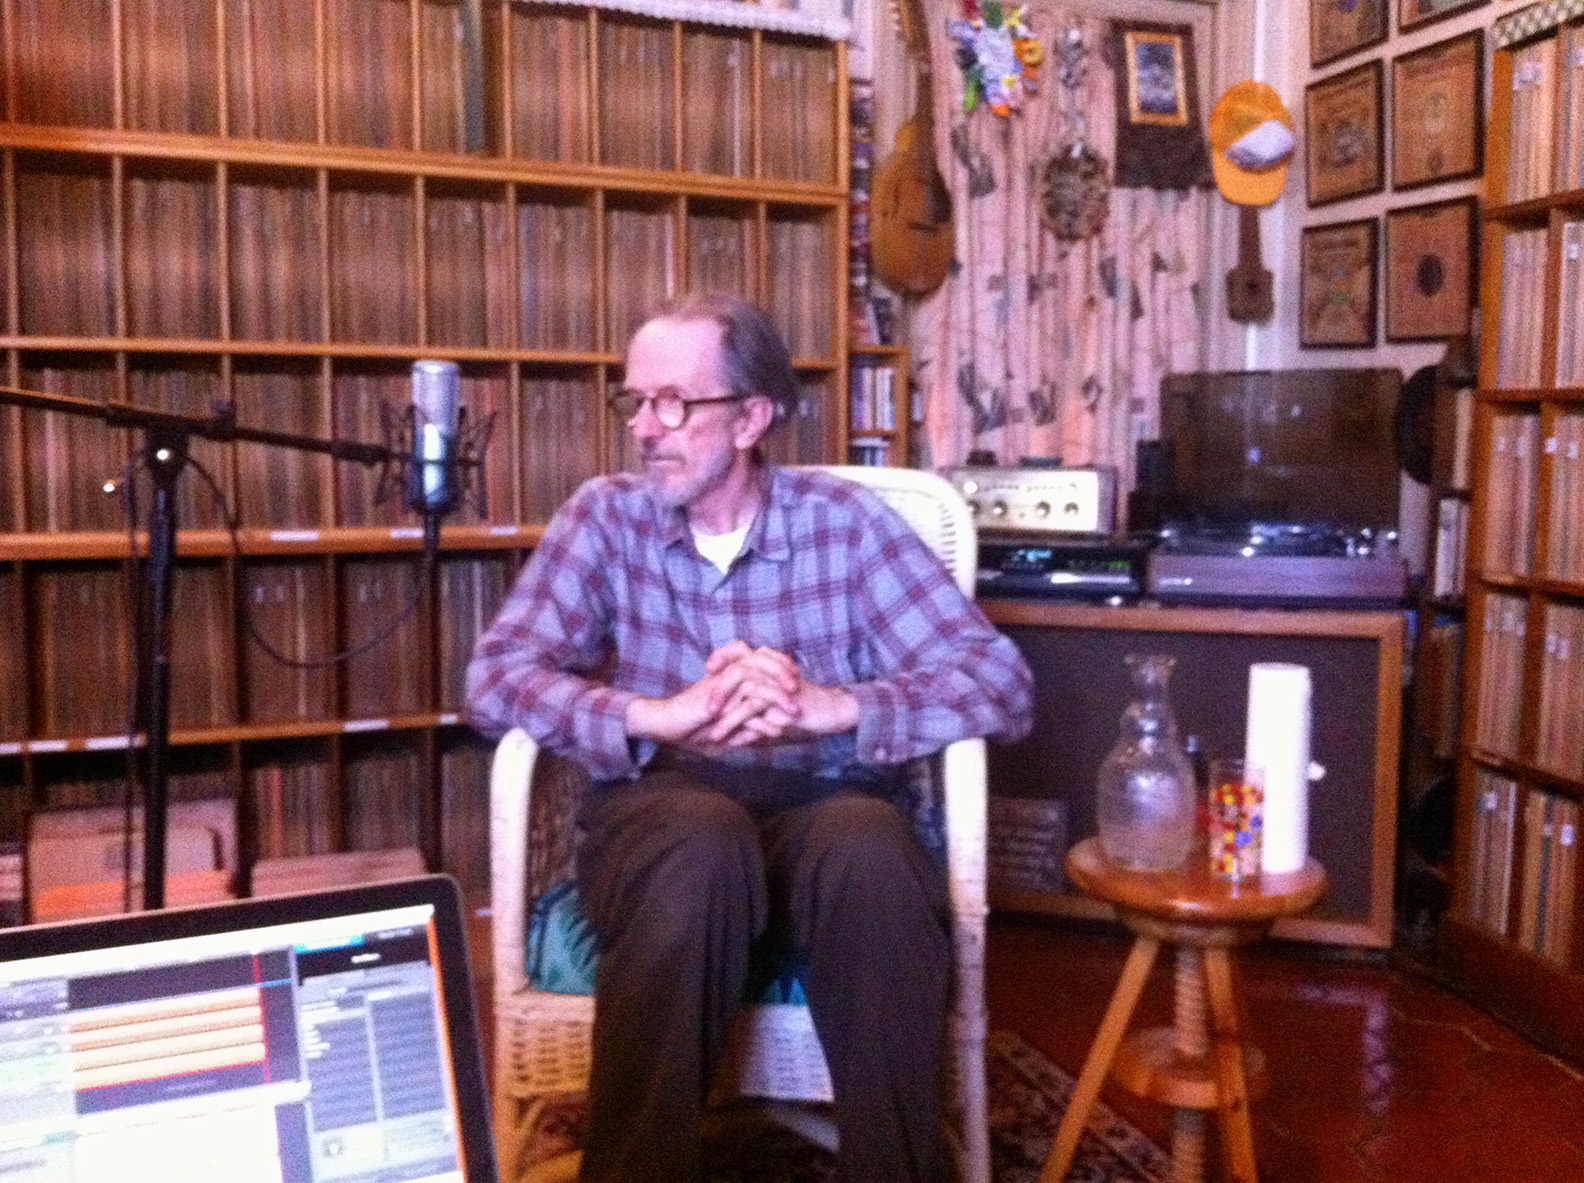 r. crumb record room john's old time radio show